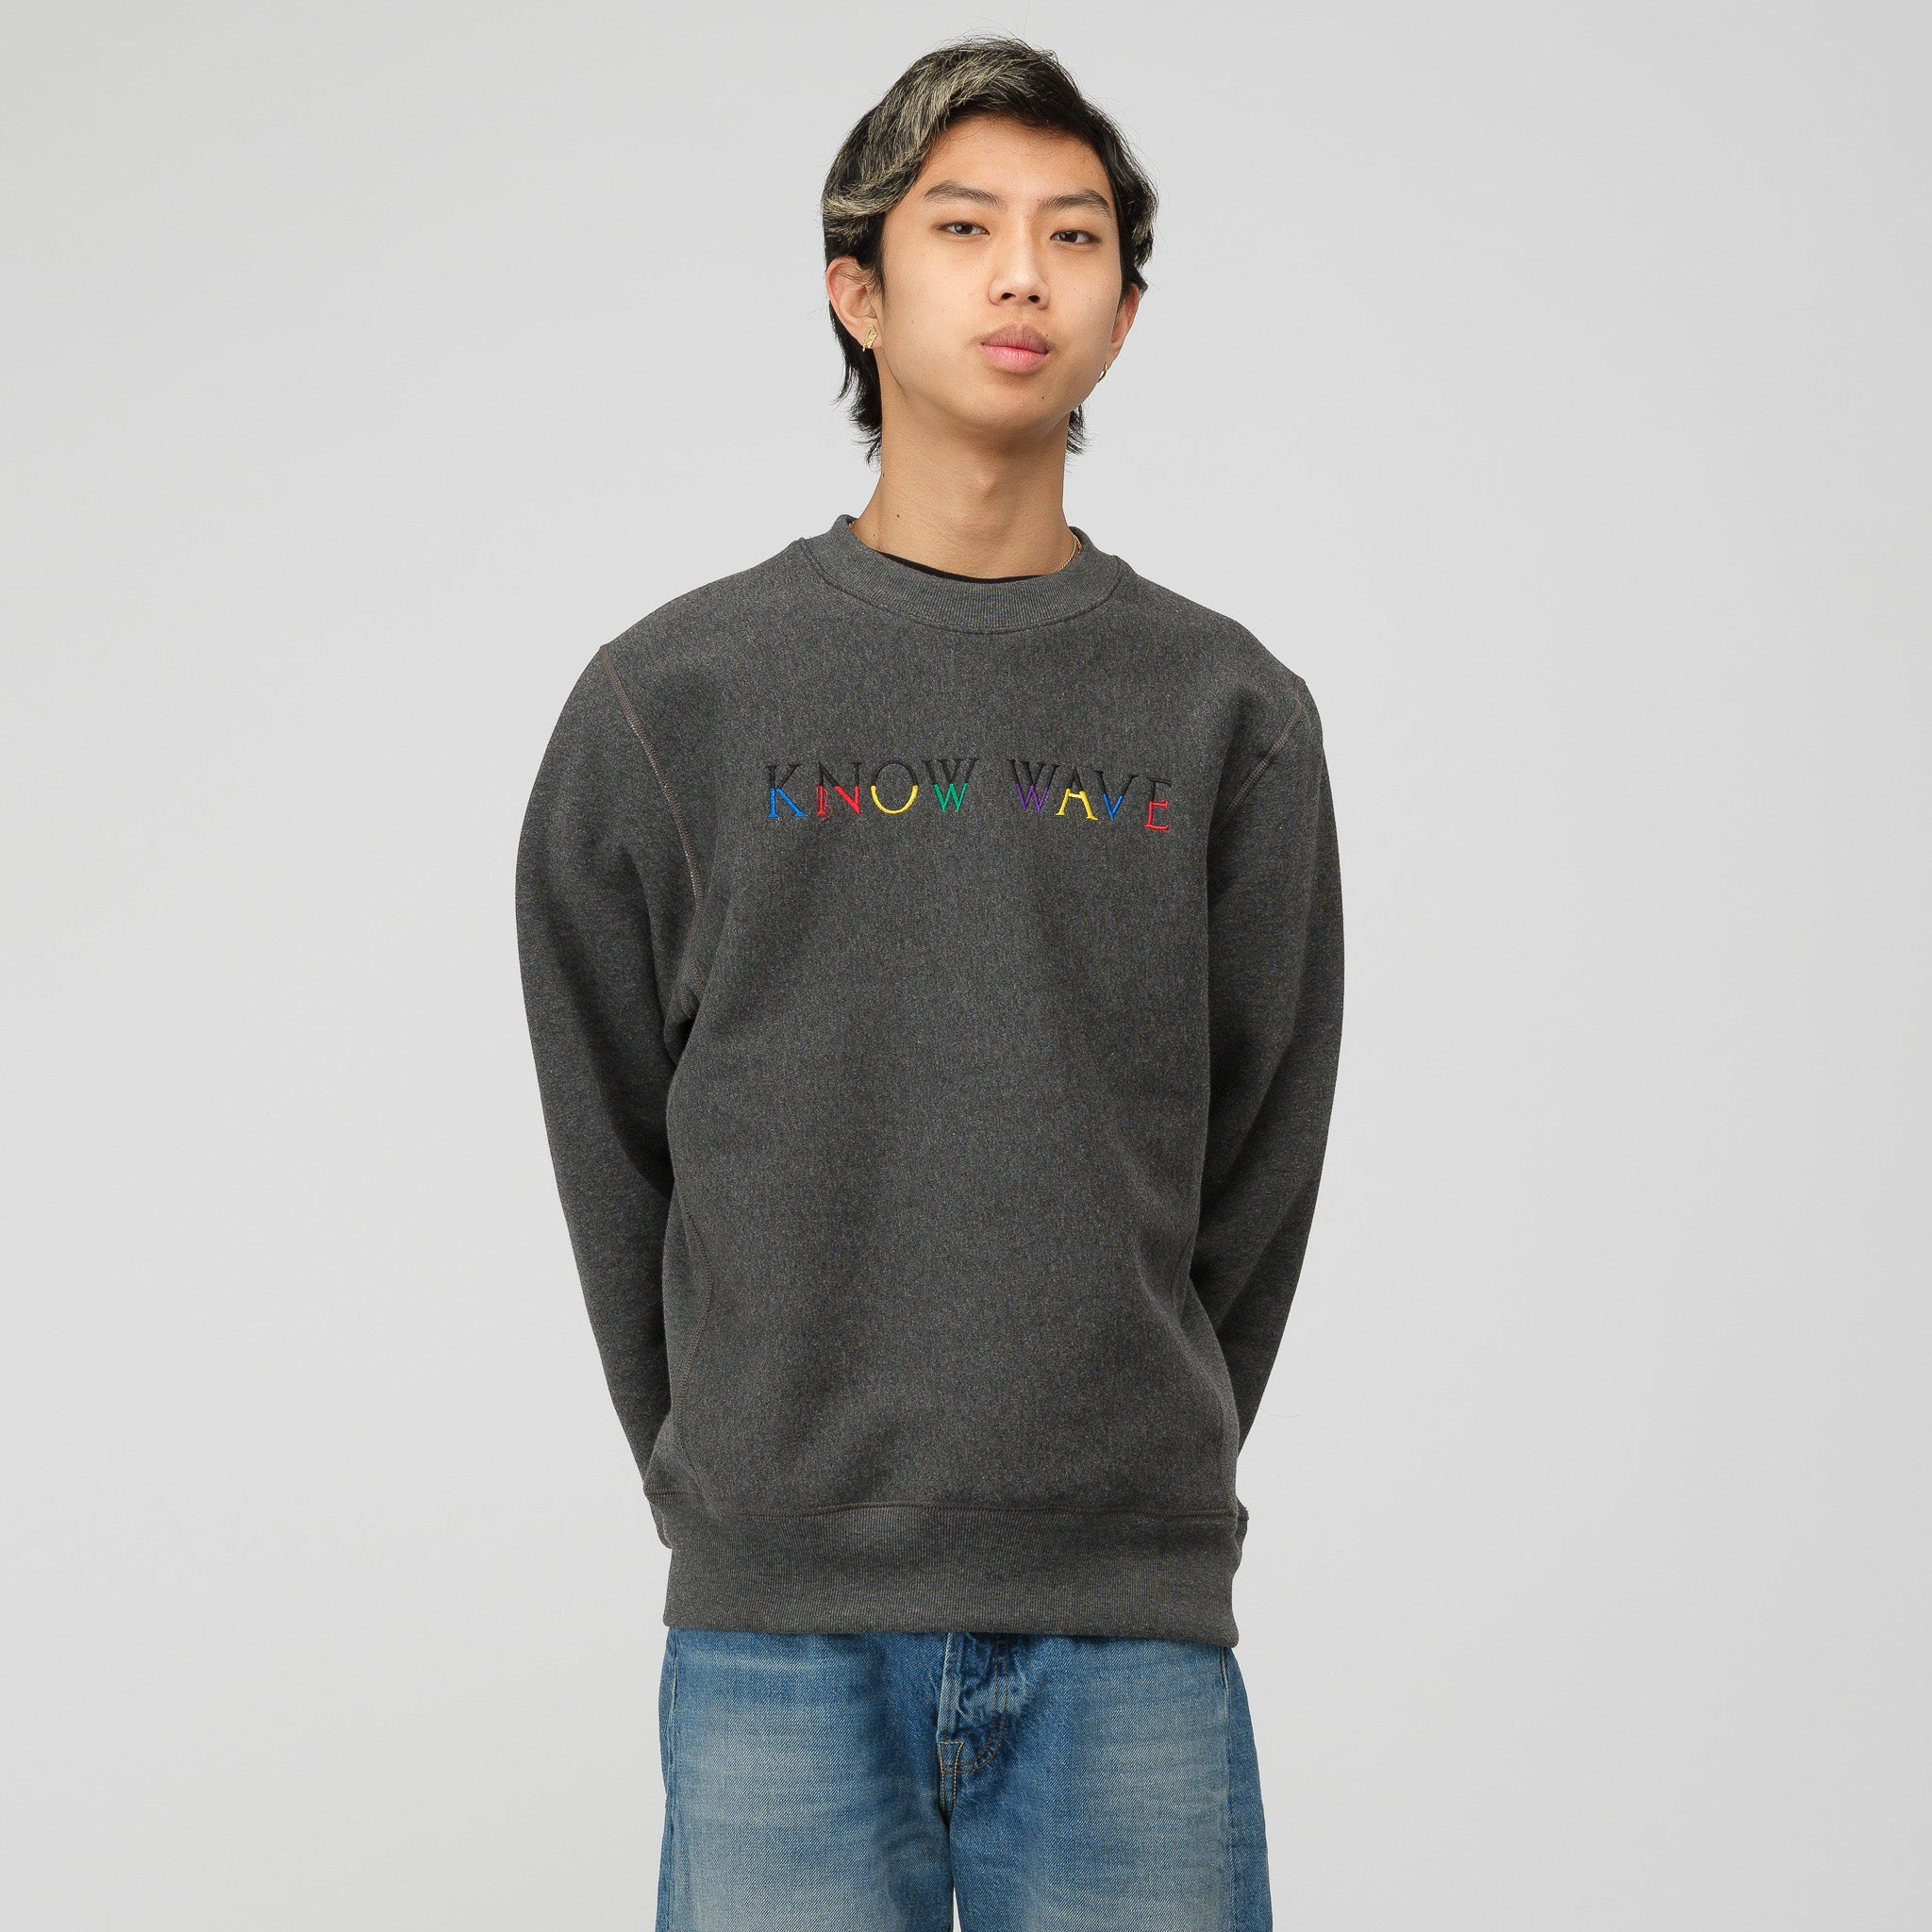 Multi Crewneck Sweatshirt in Charcoal